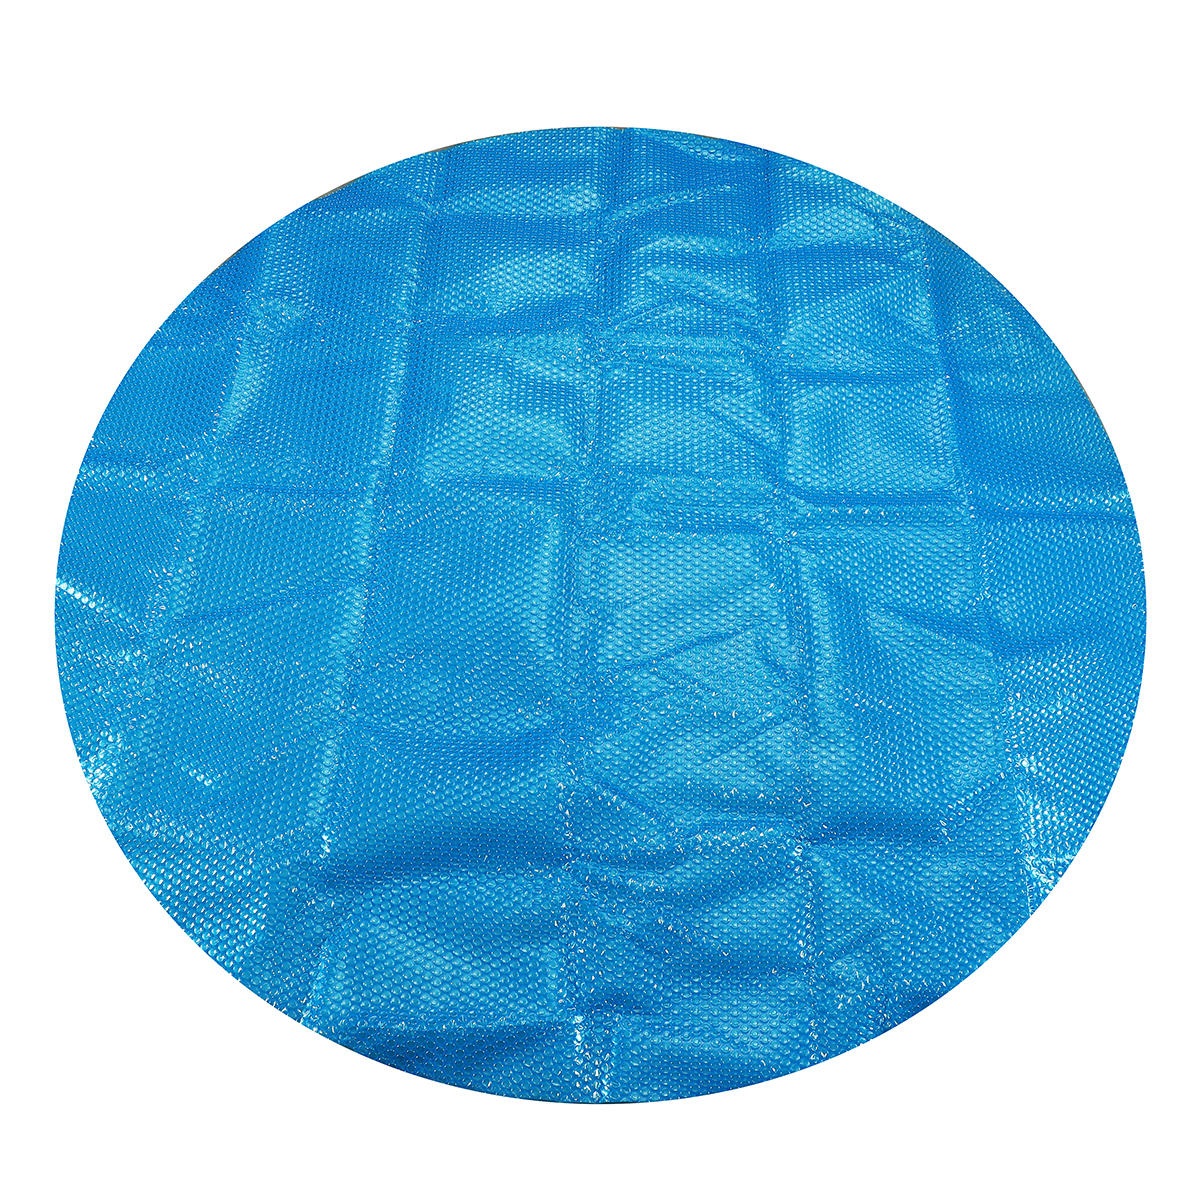 180×180CM Round Swimming Pool Hot Tub Insulation Film Cover Blanket